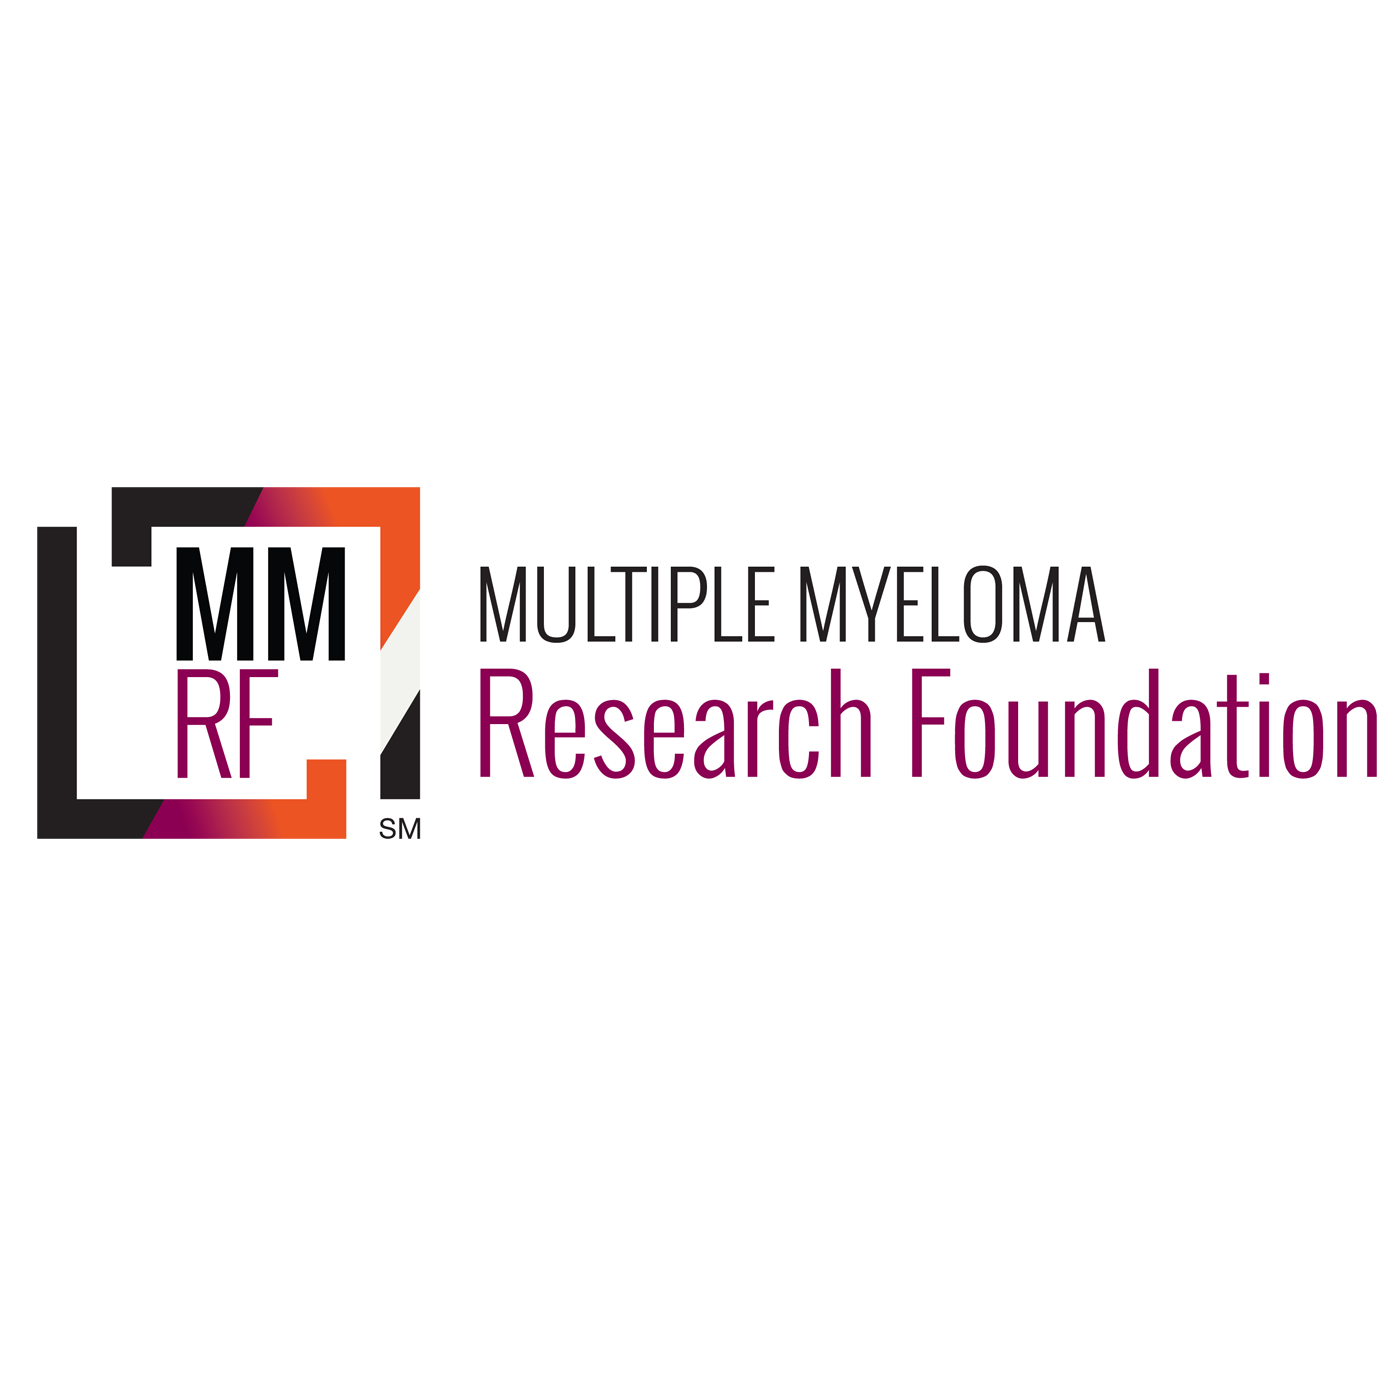 Multiple Myeloma Research Foundation